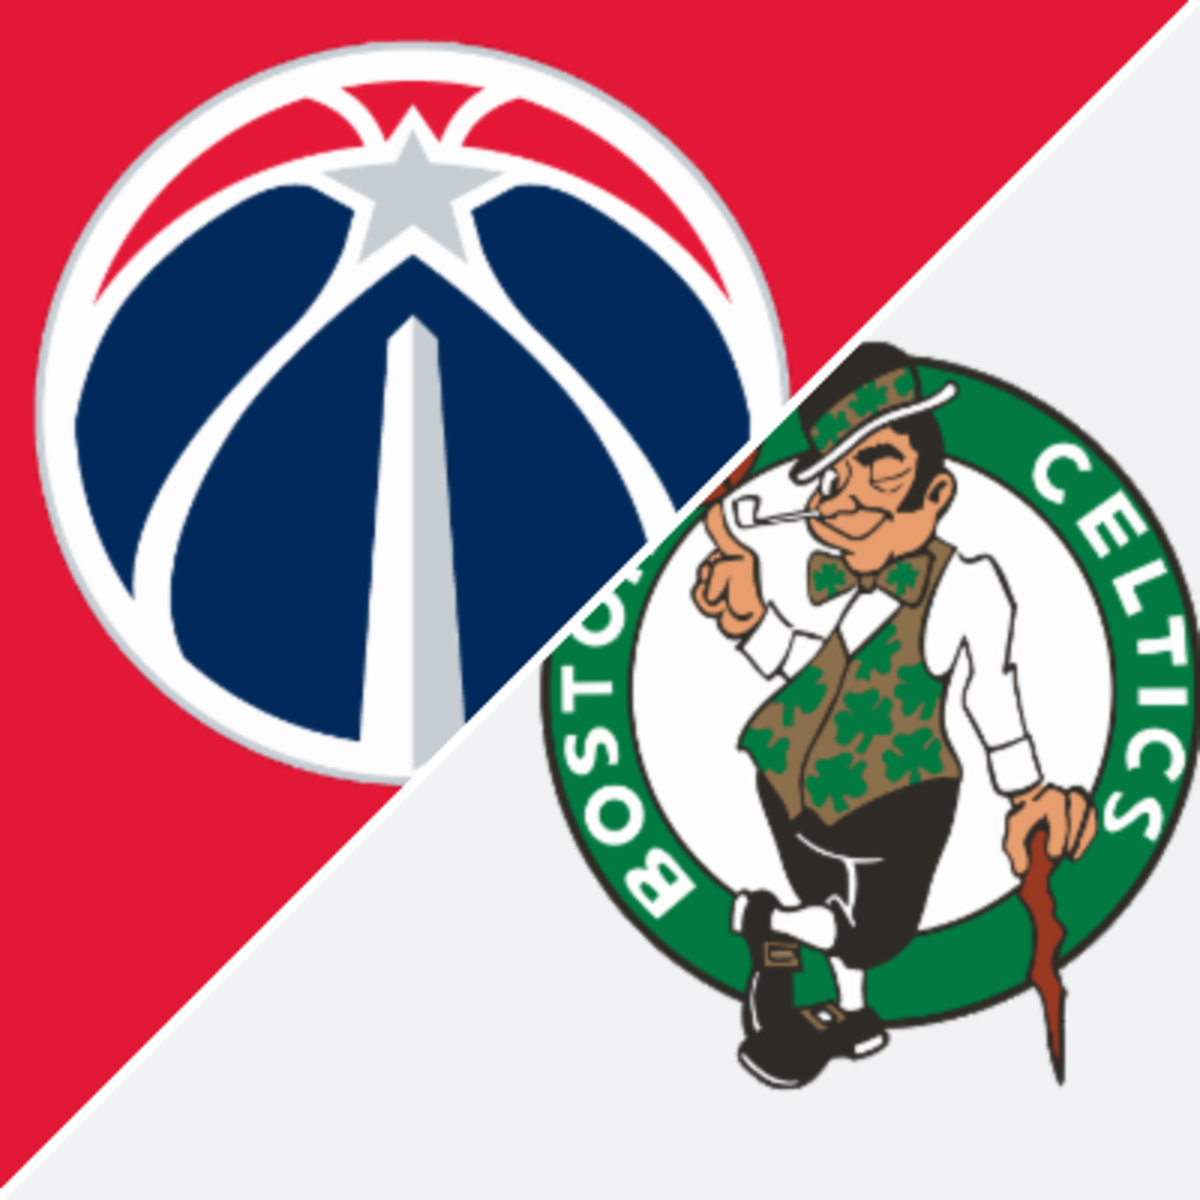 The 7th seeded Boston Celtics will play the 8th seeded Washington Wizards for the 7th seed. The loser will play the winner of the 9th and 10th seed battle to claim the 8th seed.